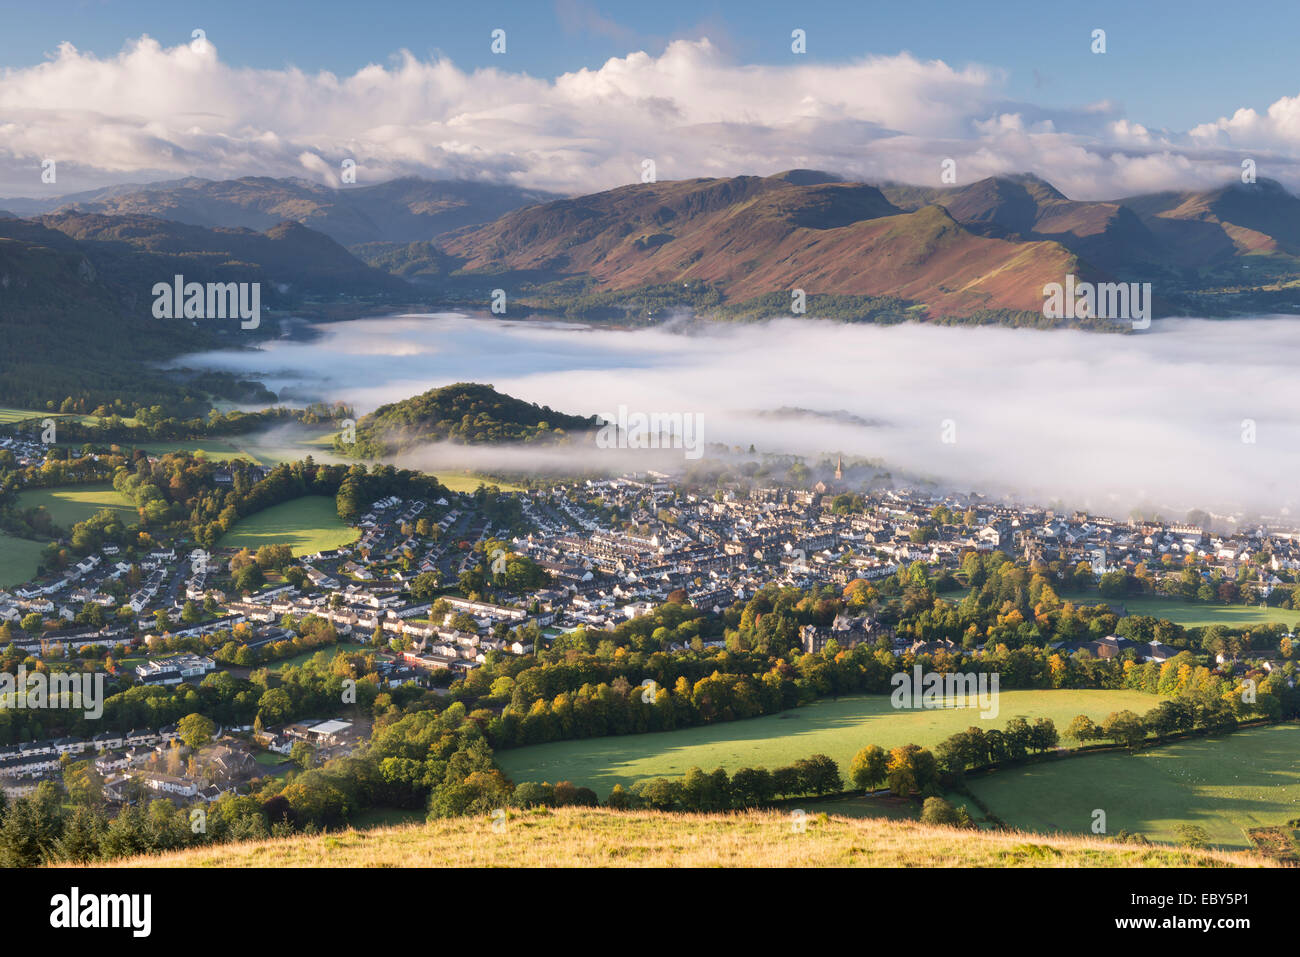 Keswick and mist covered Derwent Water at dawn, Lake District, Cumbria, England. Autumn (October) 2012. - Stock Image